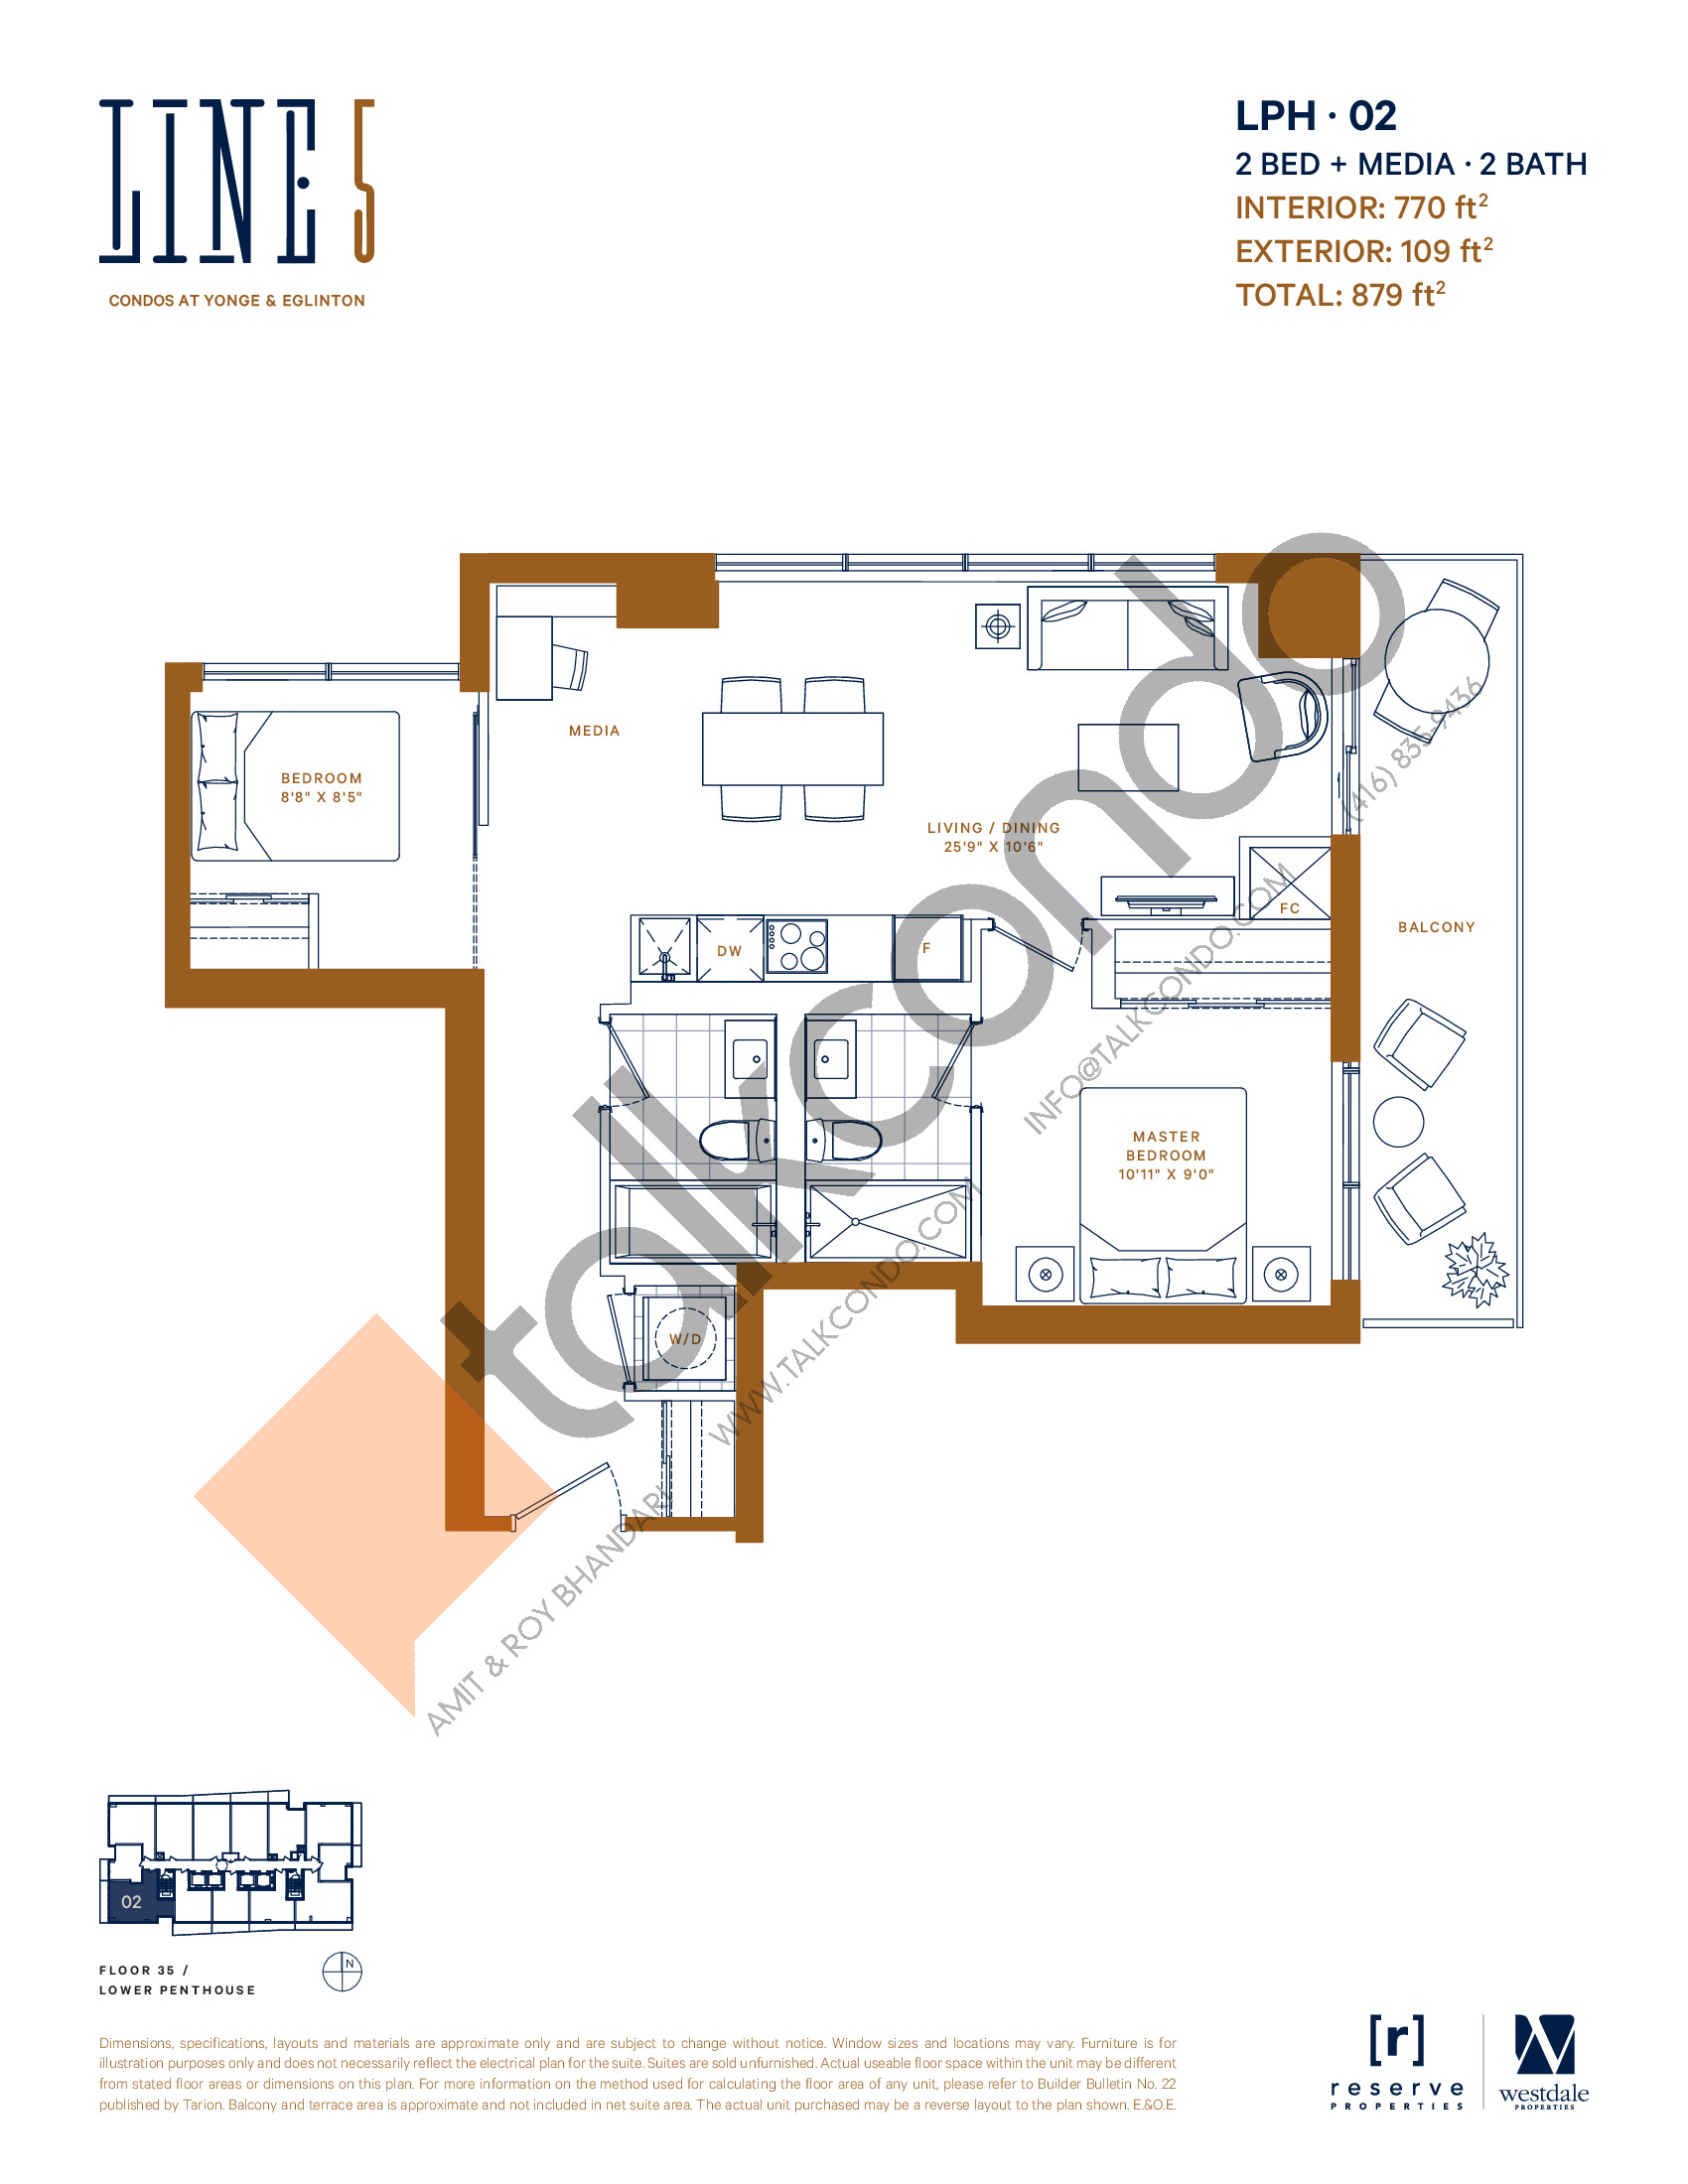 LPH-02 Floor Plan at Line 5 South Tower Condos - 770 sq.ft